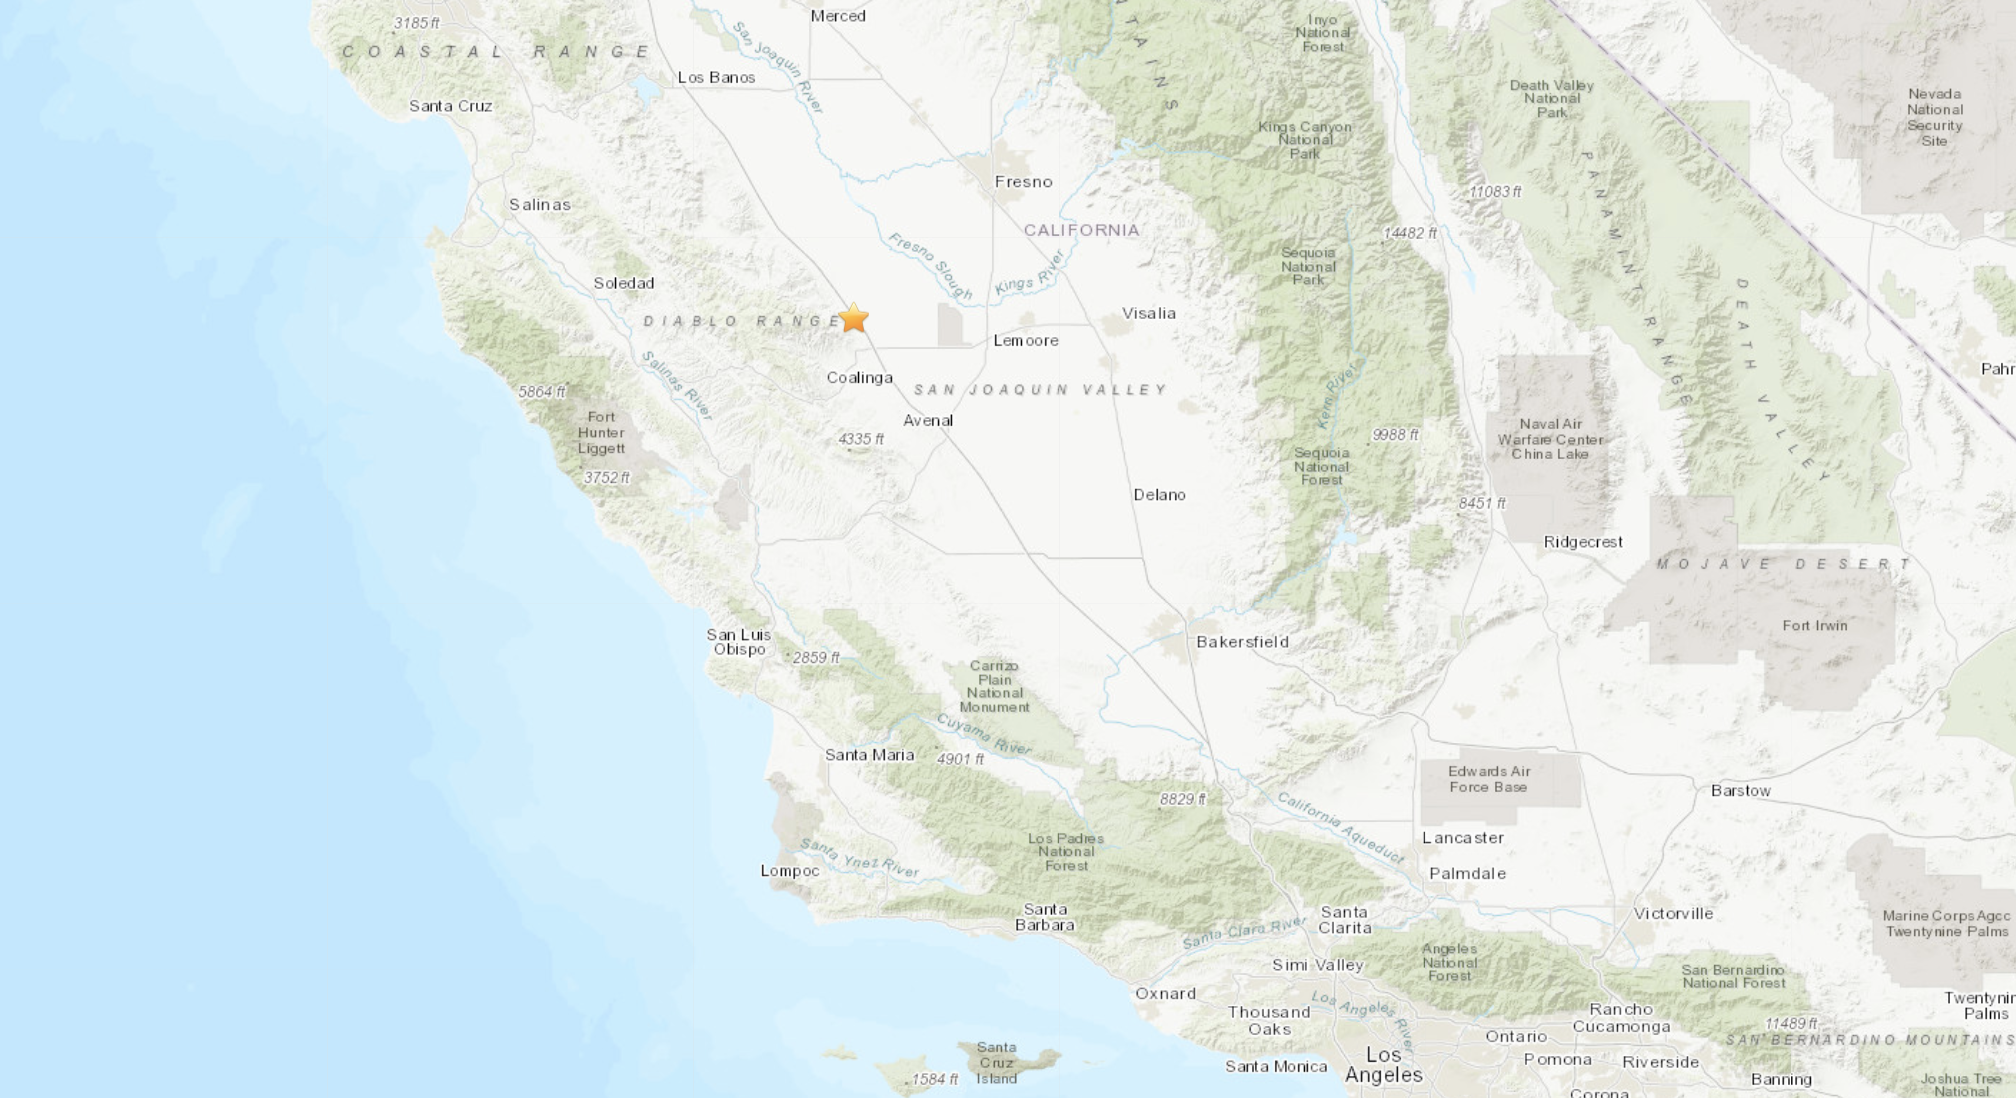 A magnitude-3.2 earthquake was reported Aug. 4, 2020, at 2:28 p.m. 11 miles from Coalinga, Calif., according to the U.S. Geological Survey. (USGS)